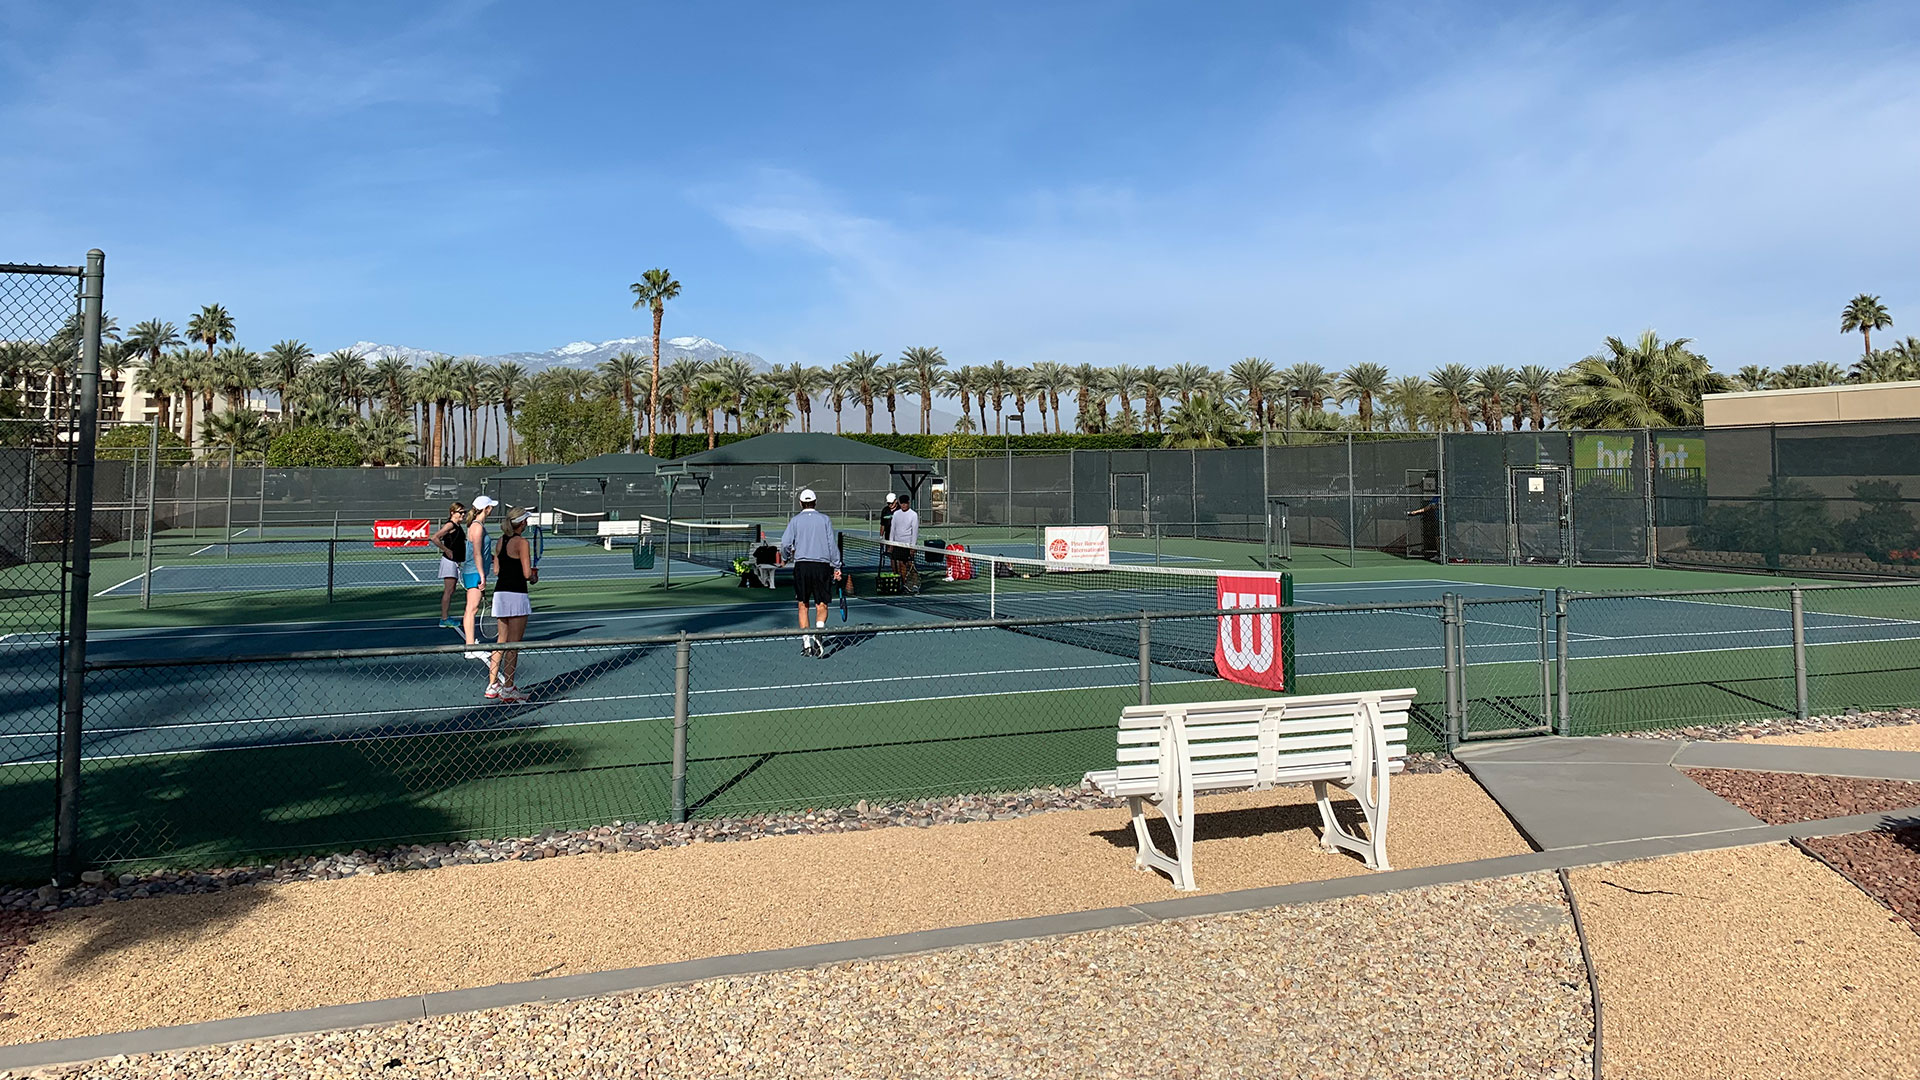 Desert Springs PBI Tennis Club 2